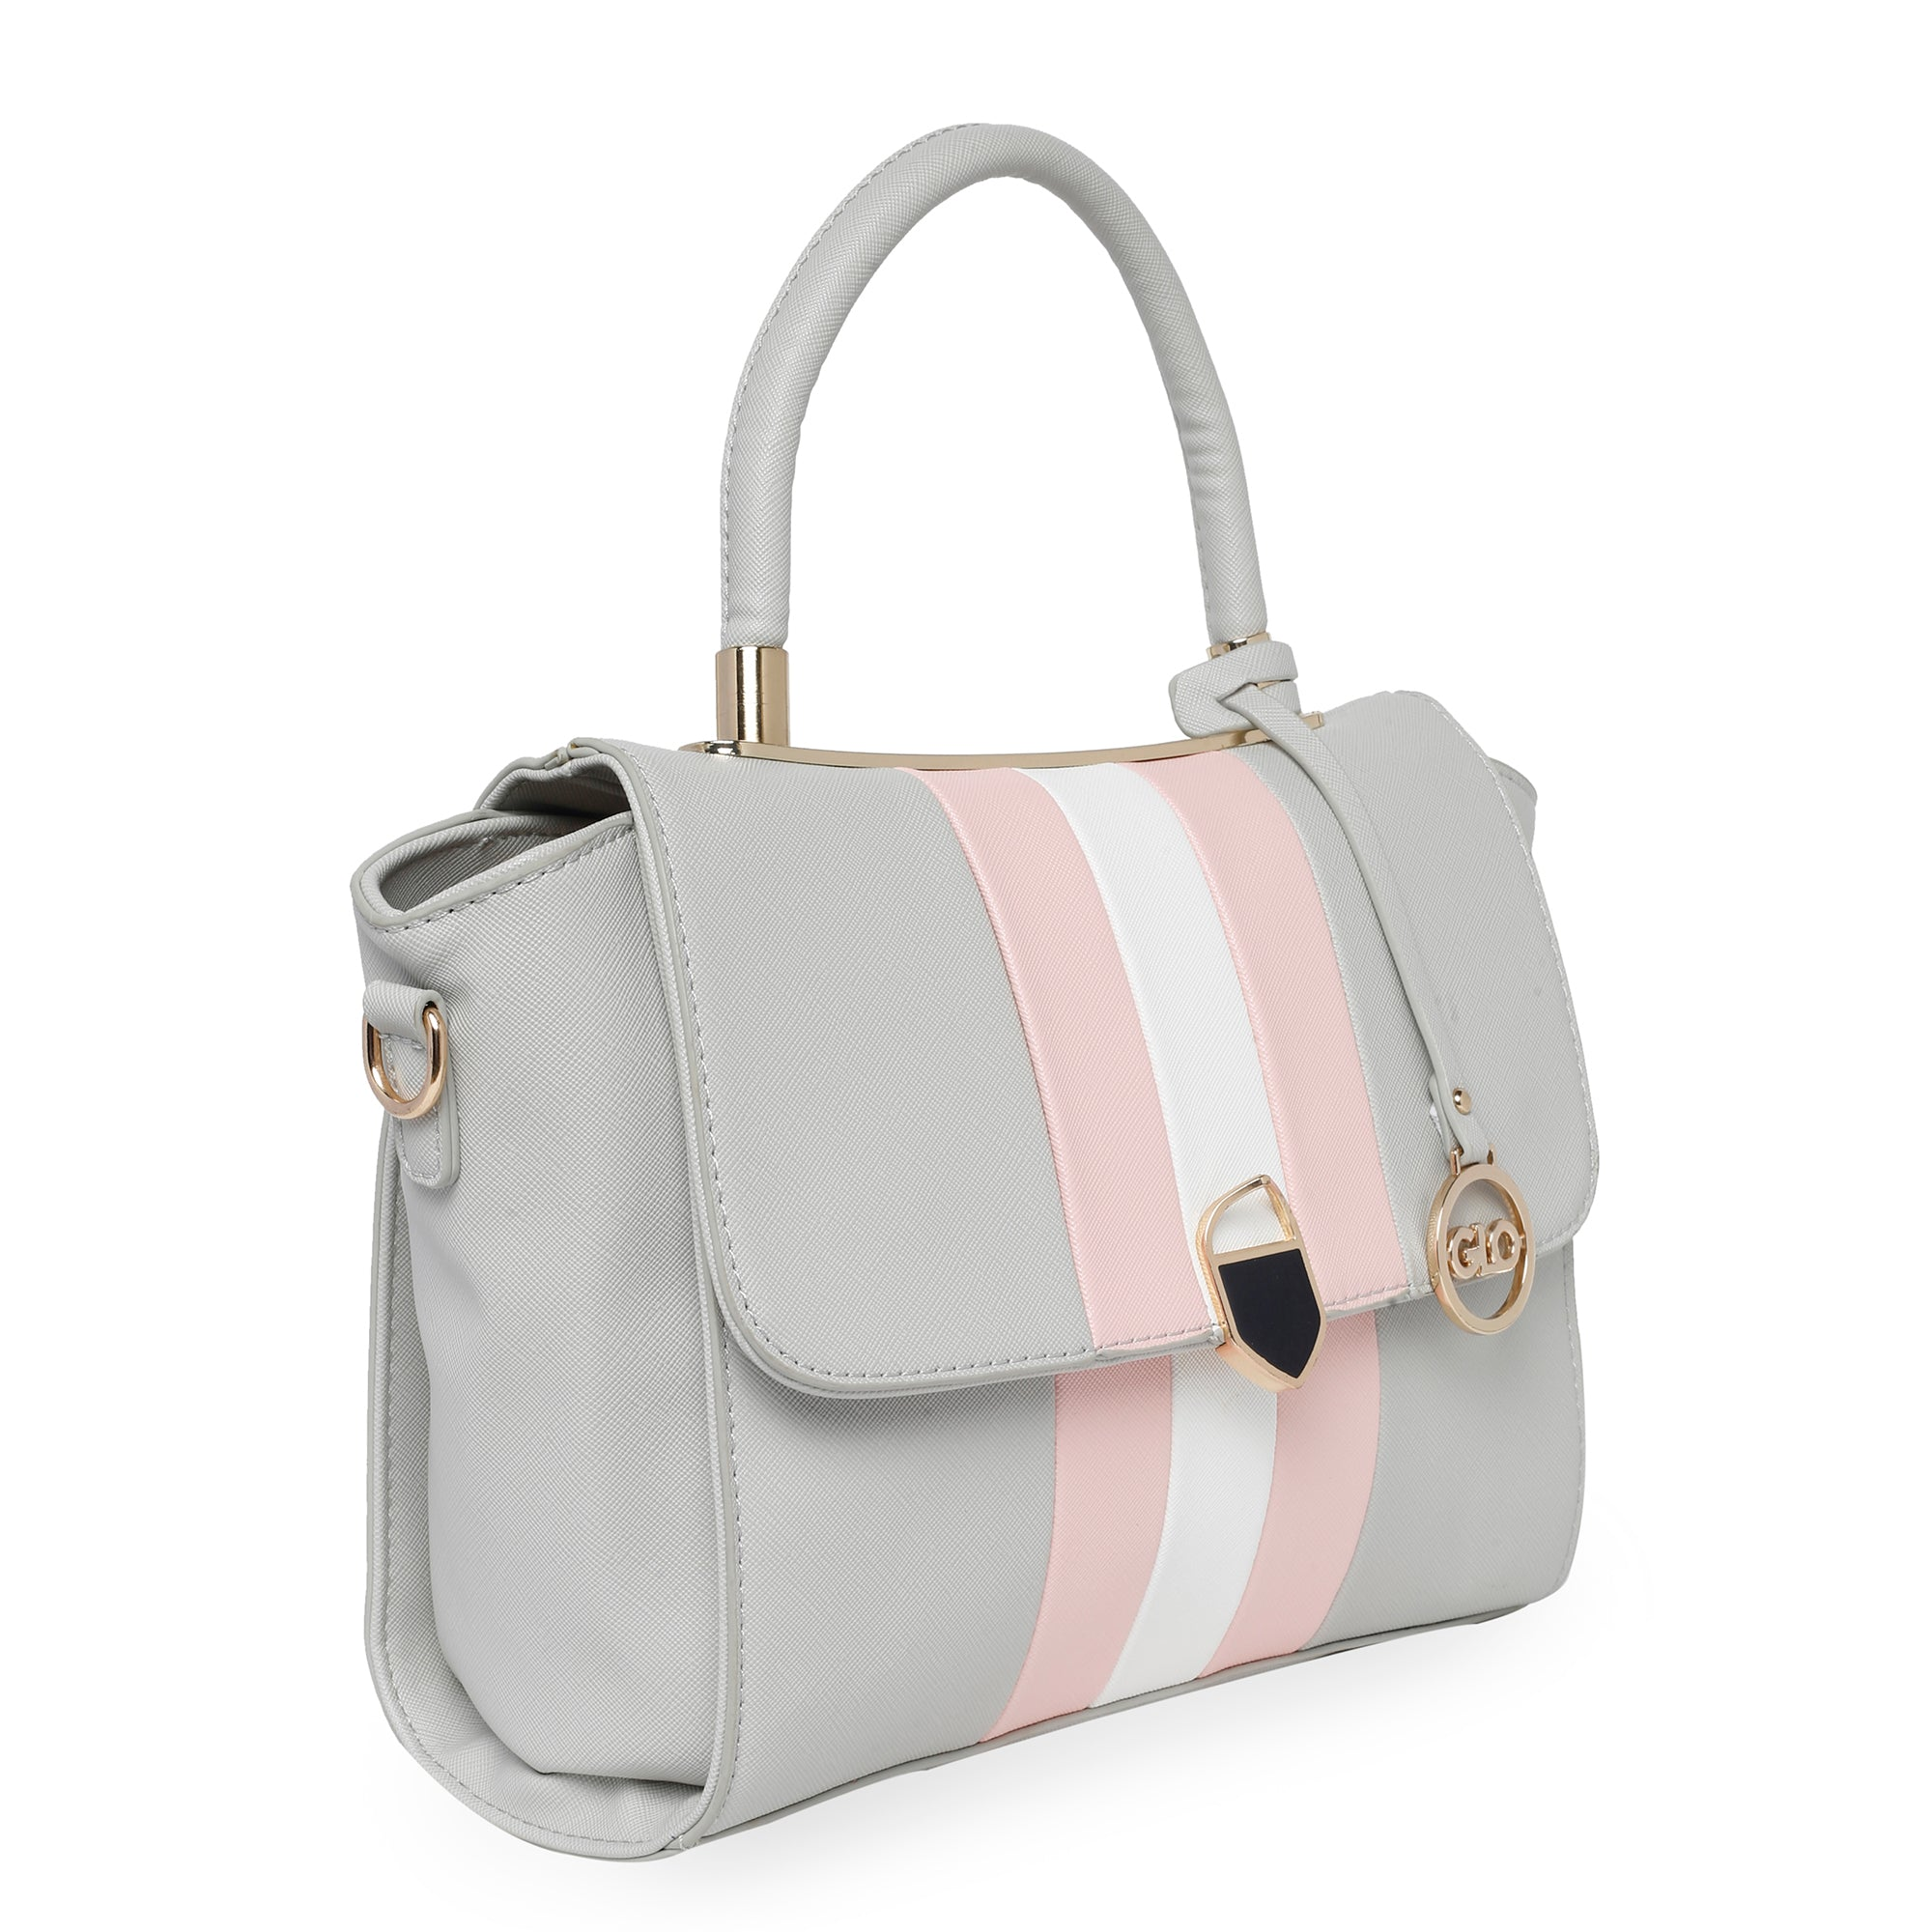 Globus Grey Nude & White Hand Bag-4